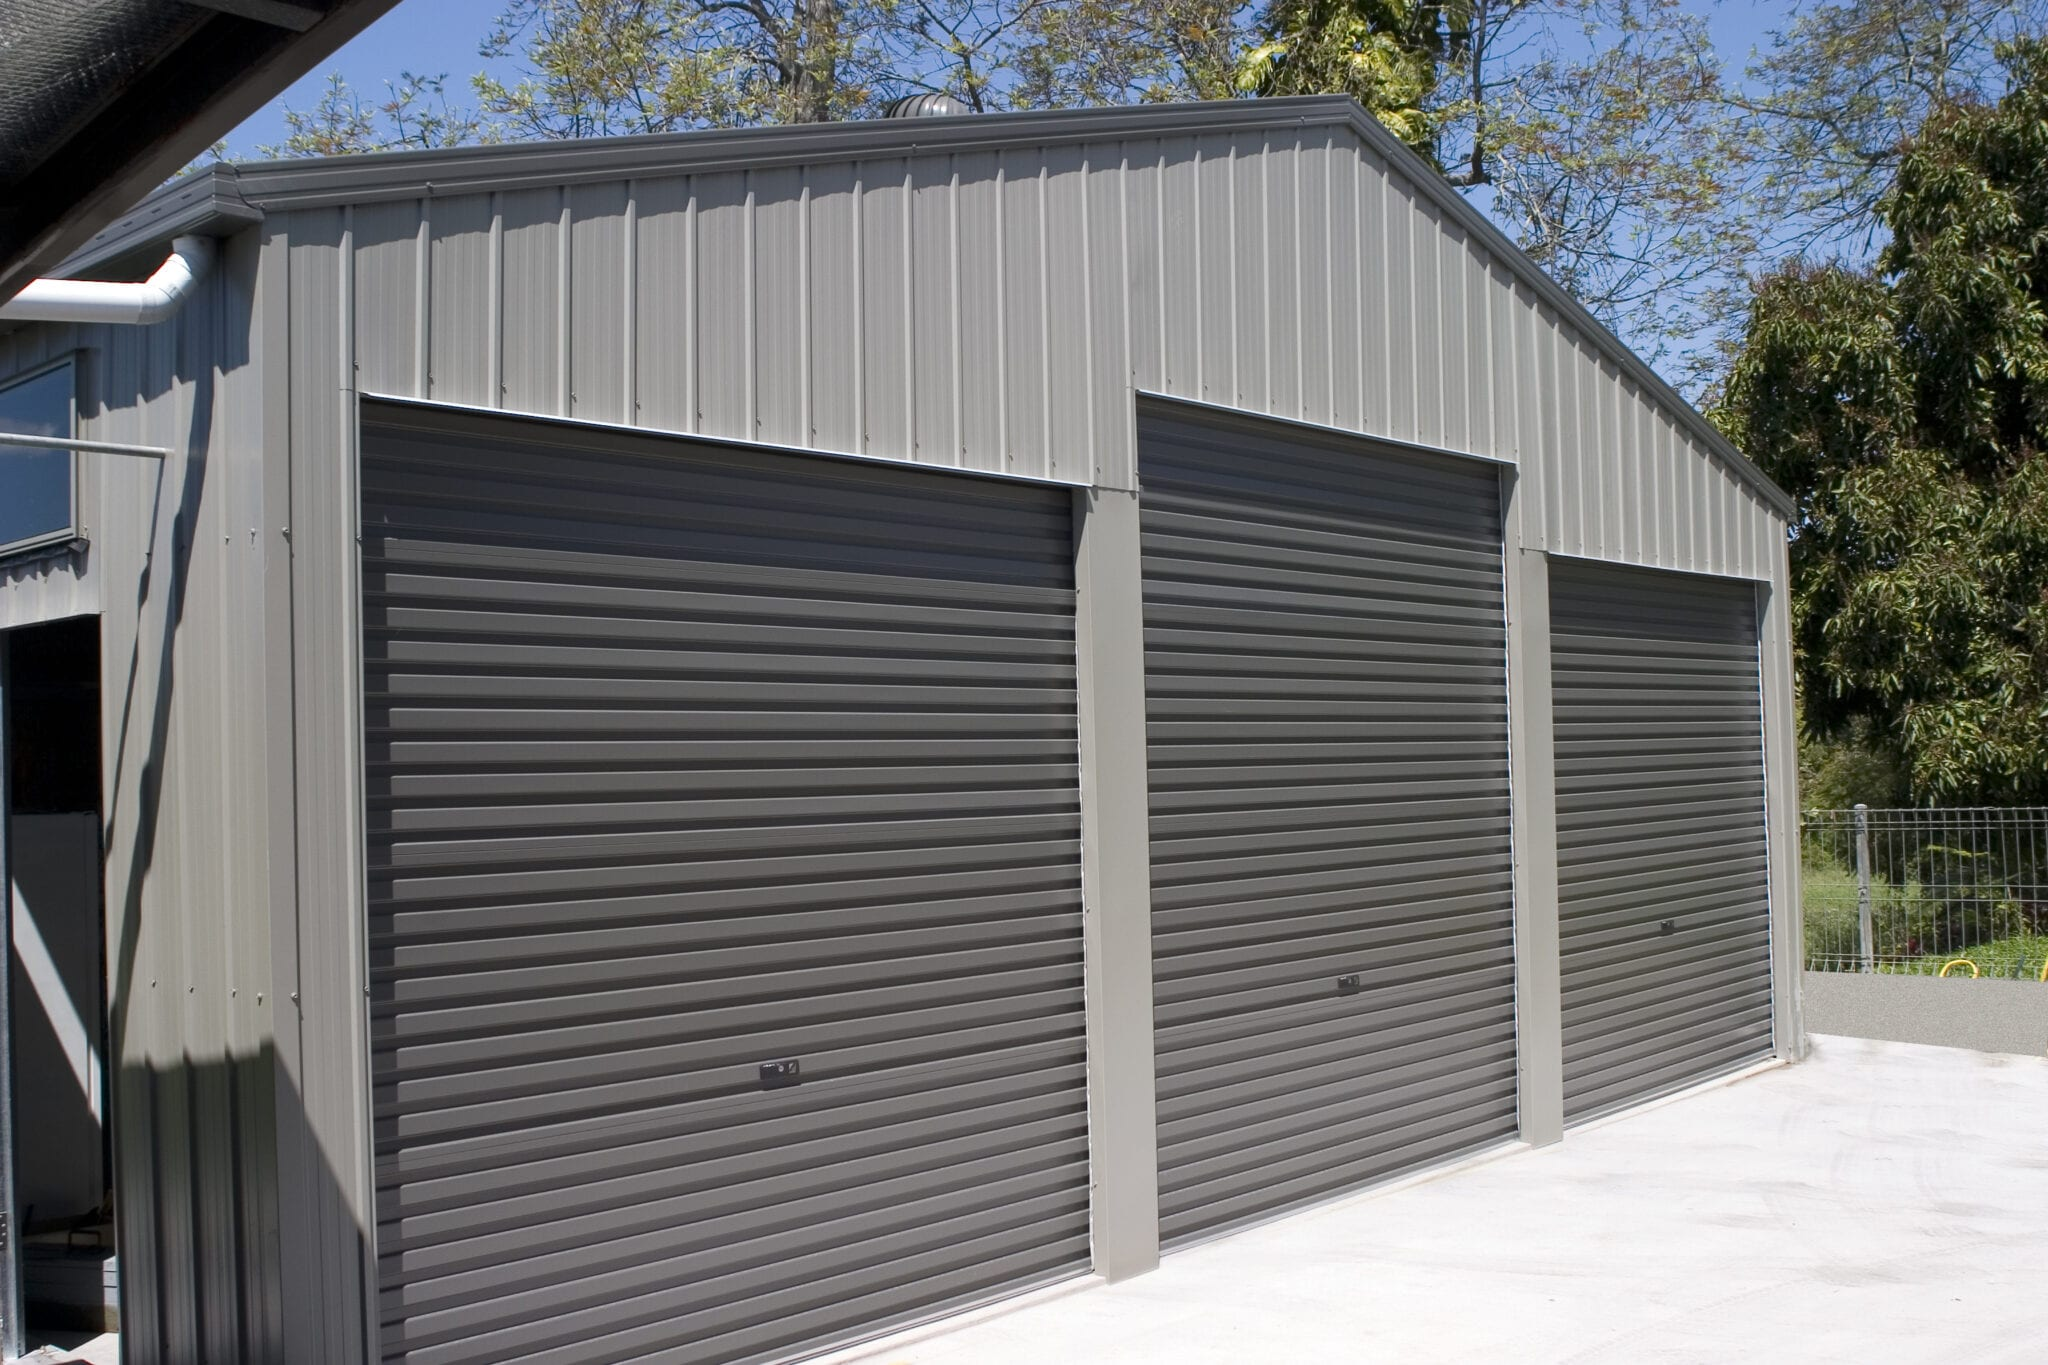 Grey 3xrd gable shed on hill